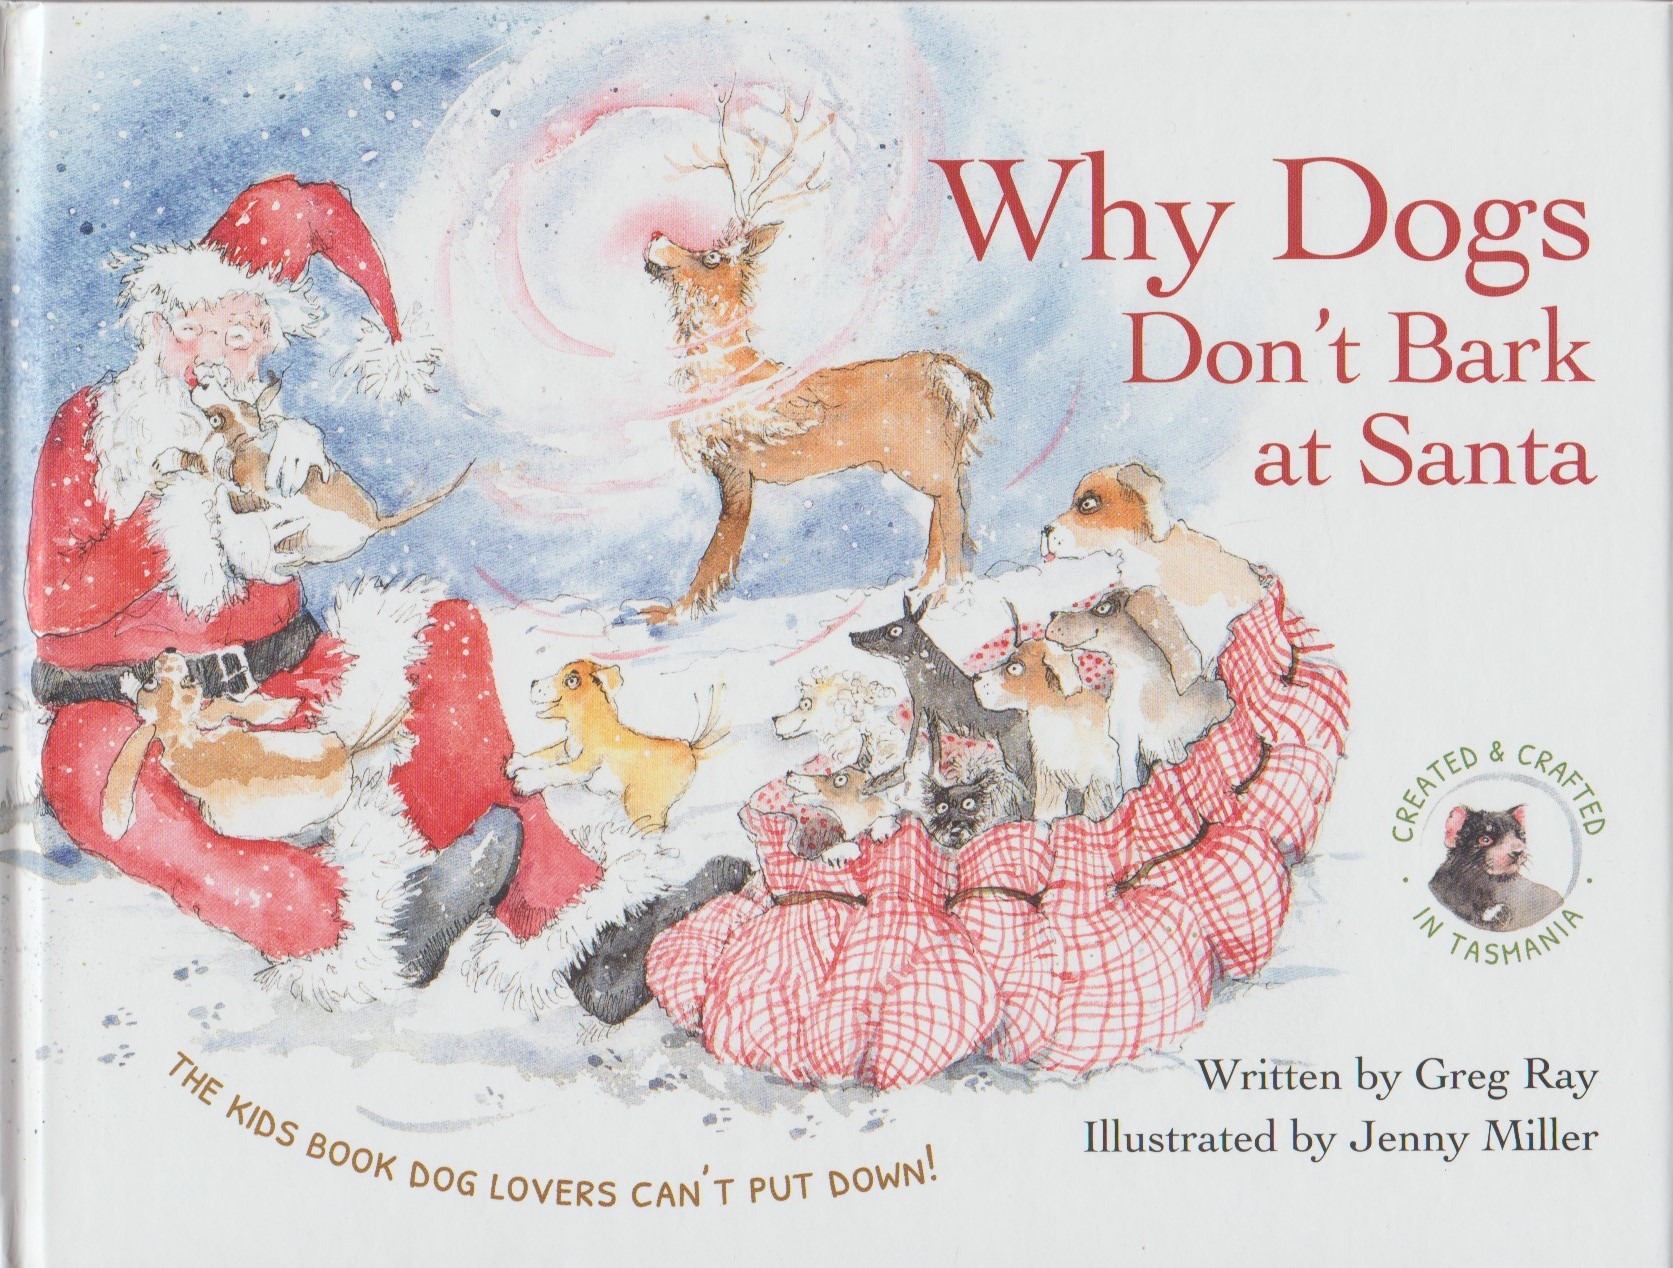 Why Dogs Don't Bark at Santa